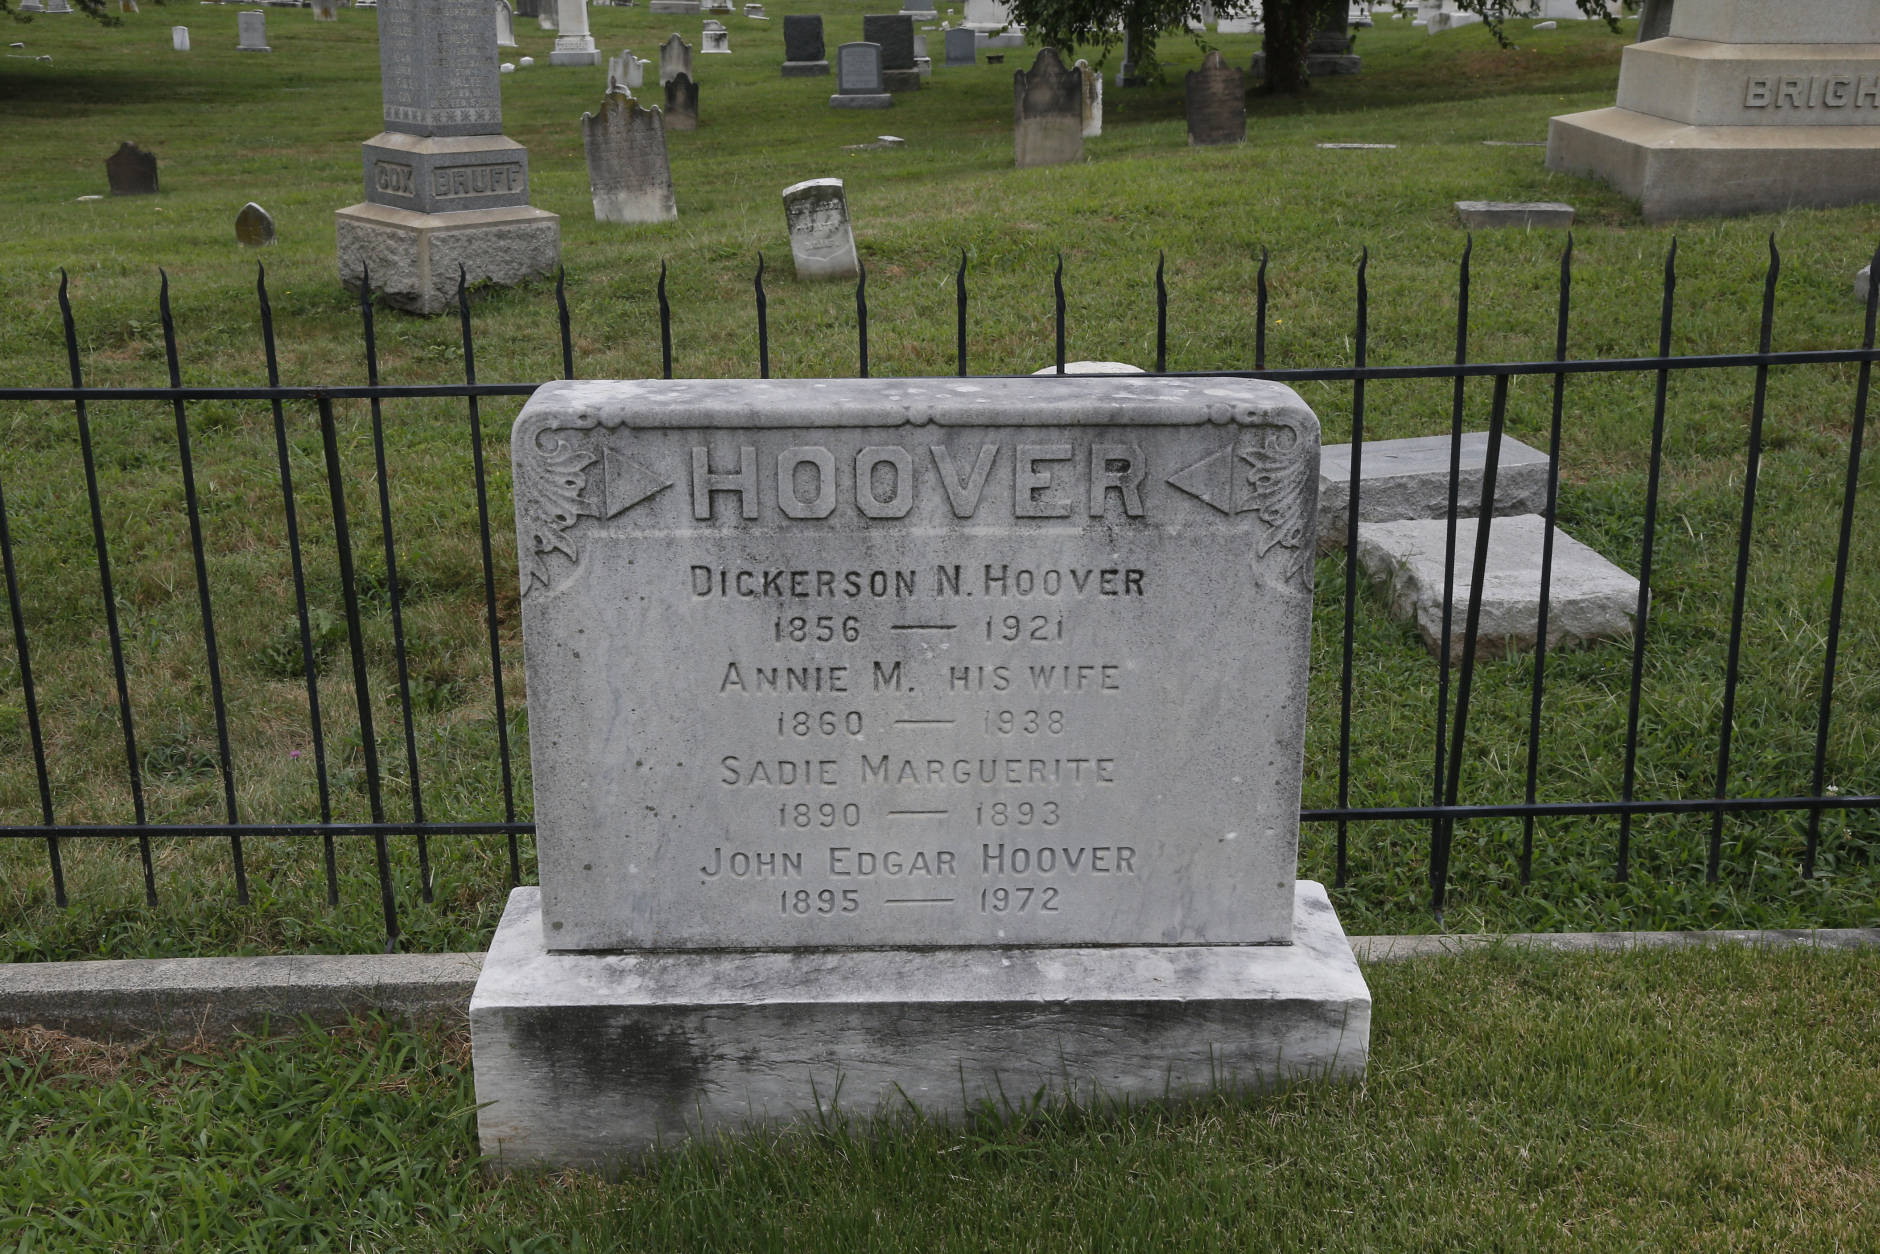 The grave of J. Edgar Hoover, the first Director of the Federal Bureau of Investigation (FBI), is seen at Congressional Cemetery in Washington, Wednesday, Aug. 7, 2013. (AP Photo/Charles Dharapak)